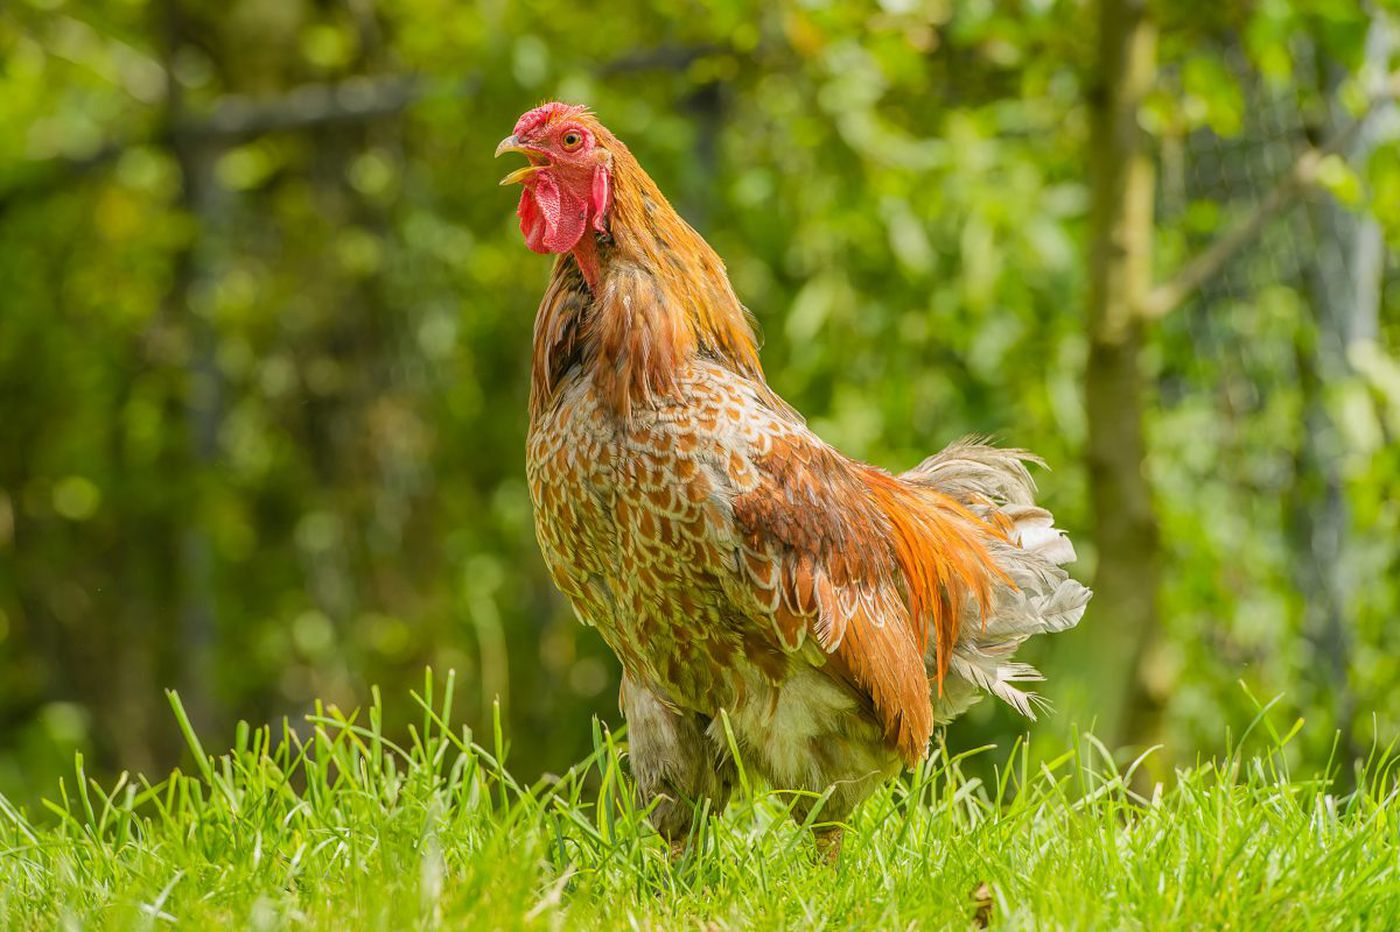 Nationwide salmonella outbreak linked to backyard chickens